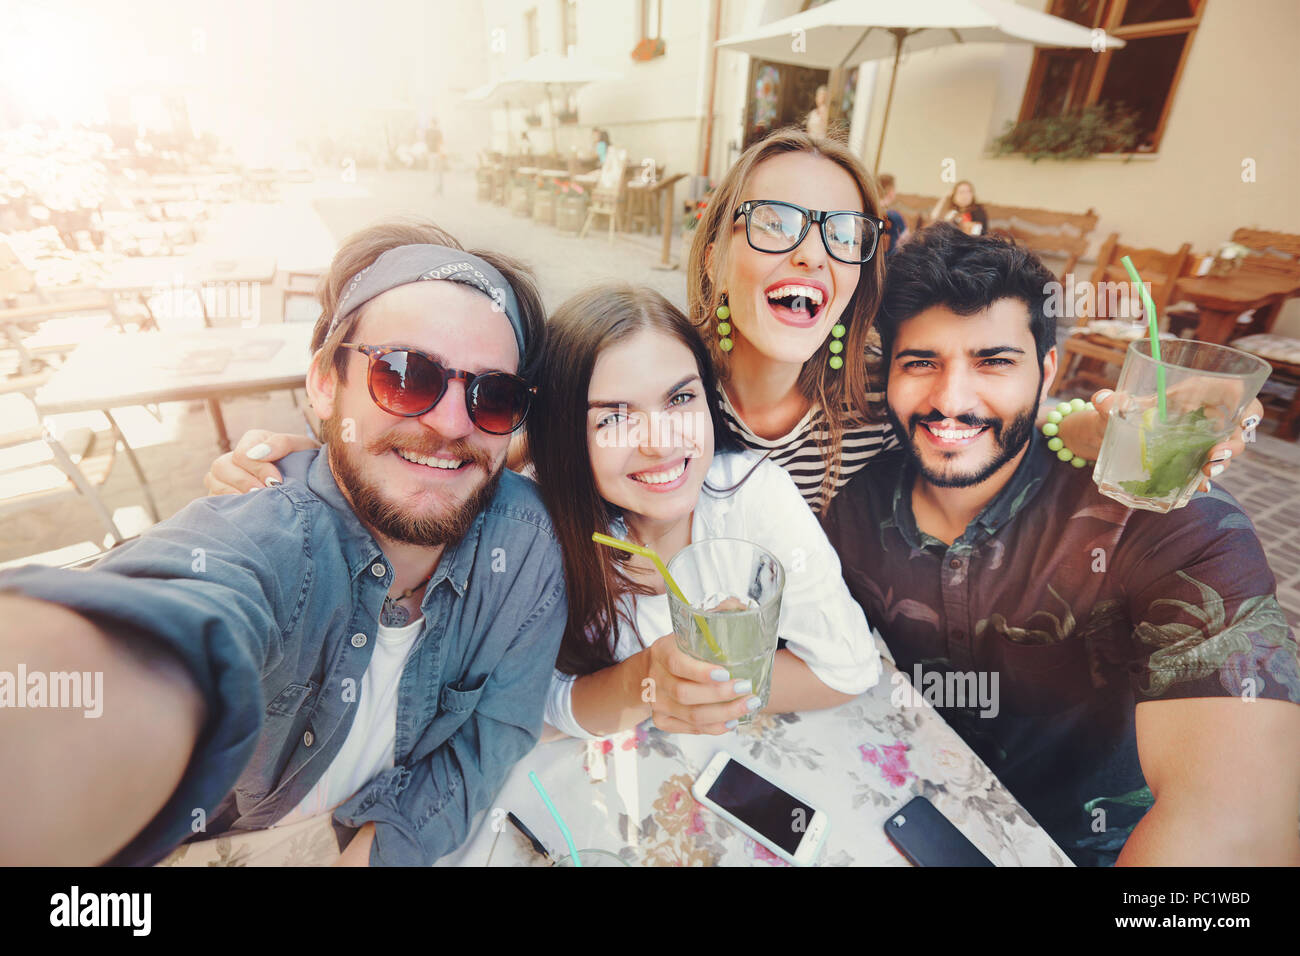 Four joyful cheerful friends taking a selfie while sitting together at cafe and showing mohito outdoors - Stock Image